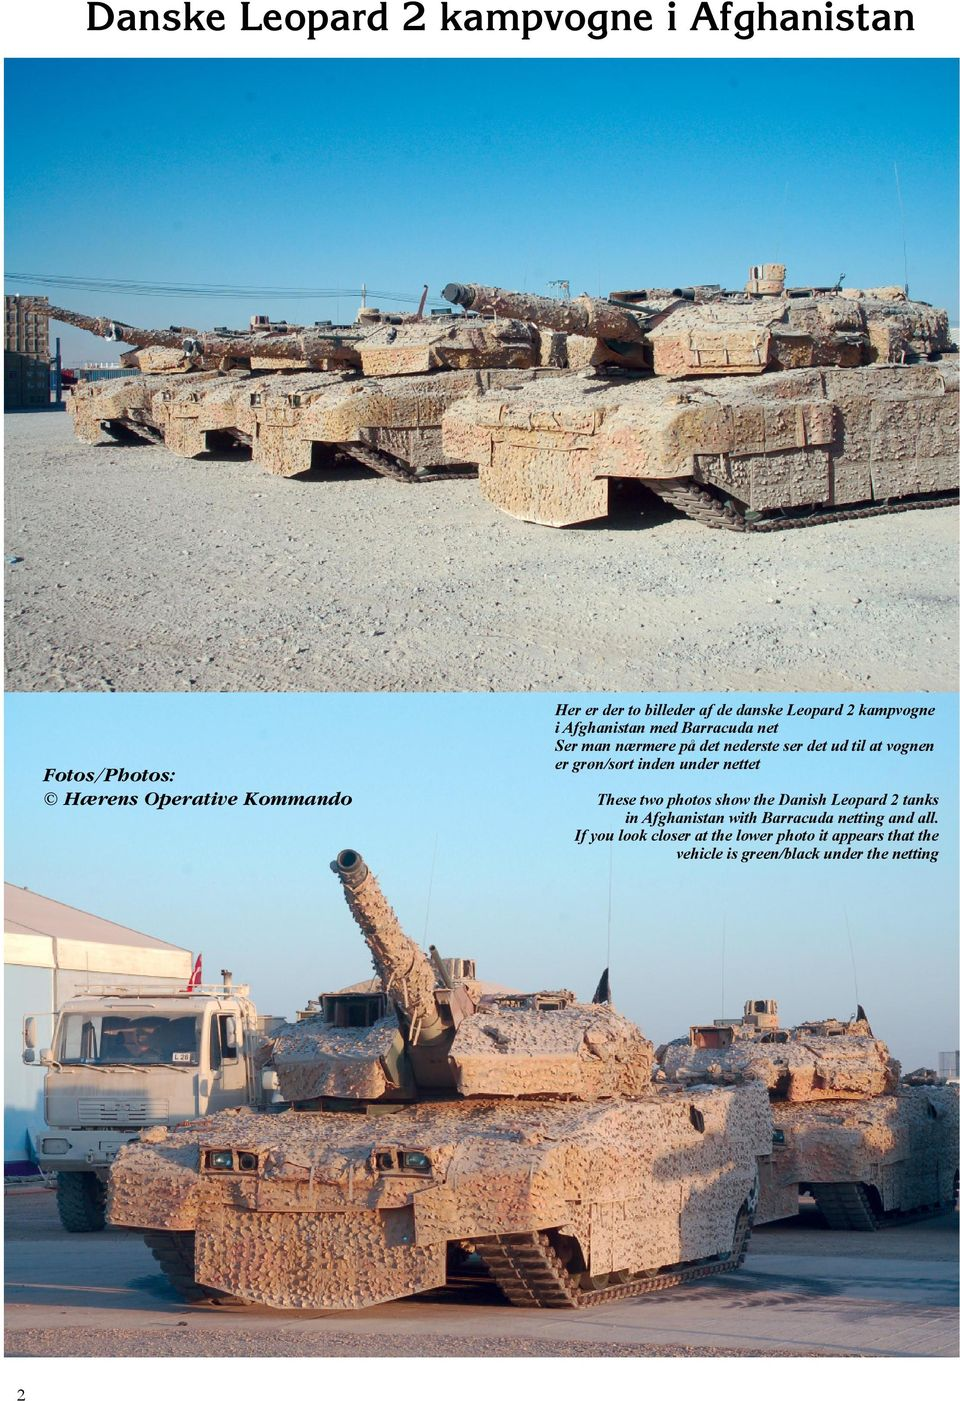 vognen er grøn/sort inden under nettet These two photos show the Danish Leopard 2 tanks in Afghanistan with